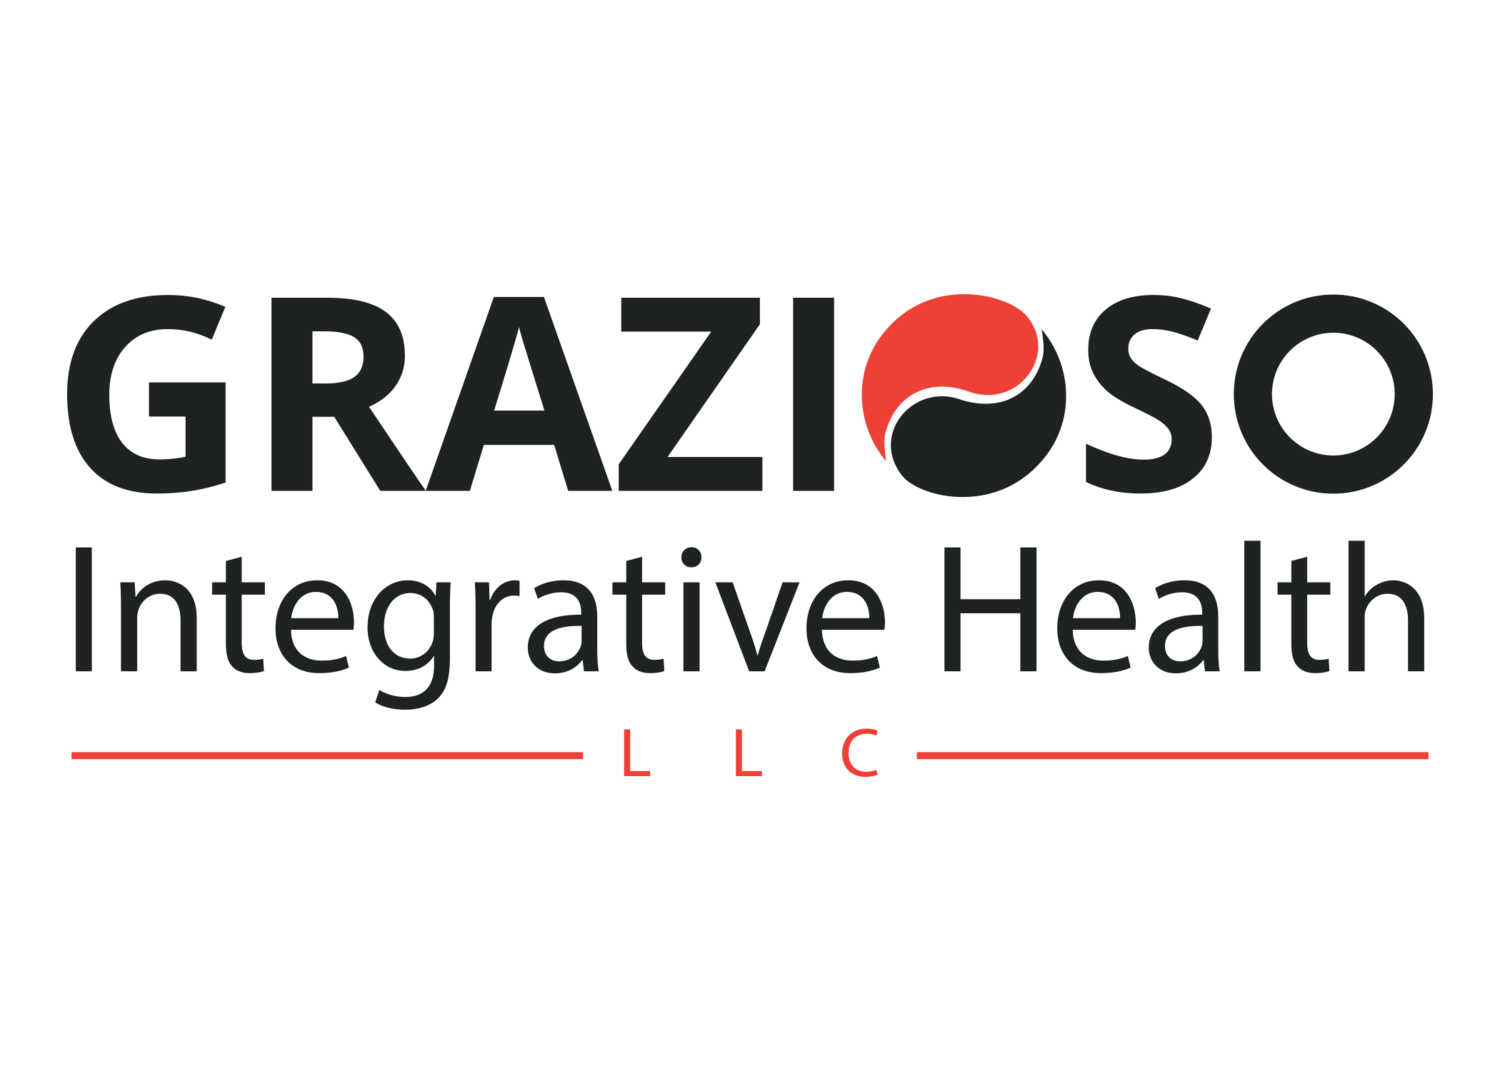 Grazioso Integrative Health, LLC